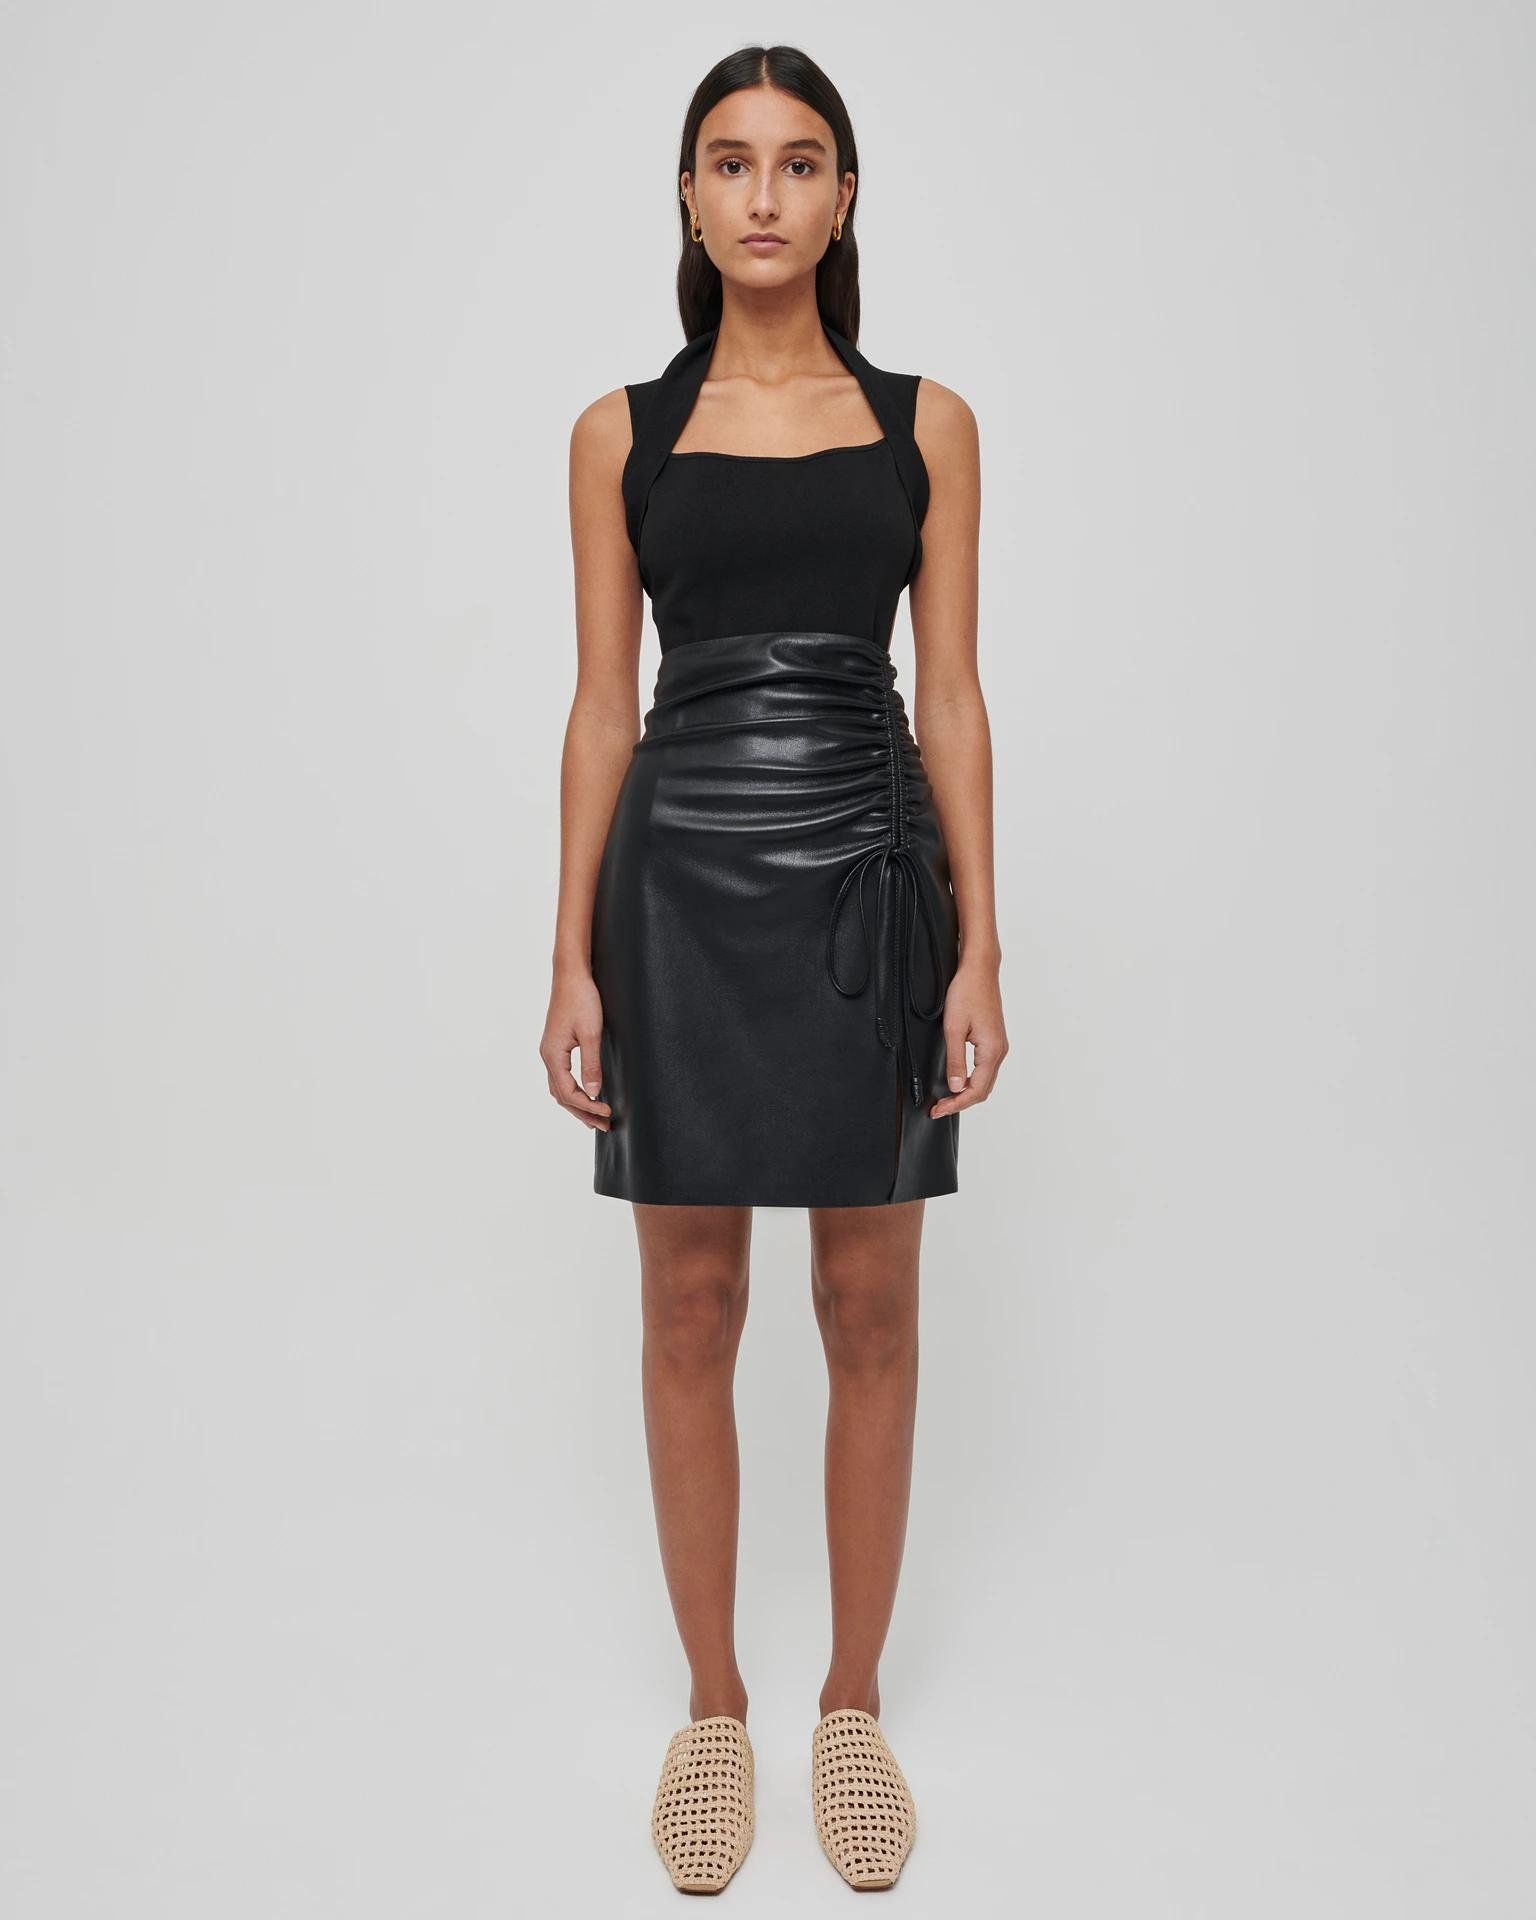 ZOW - Ruched vegan leather mini skirt - Black